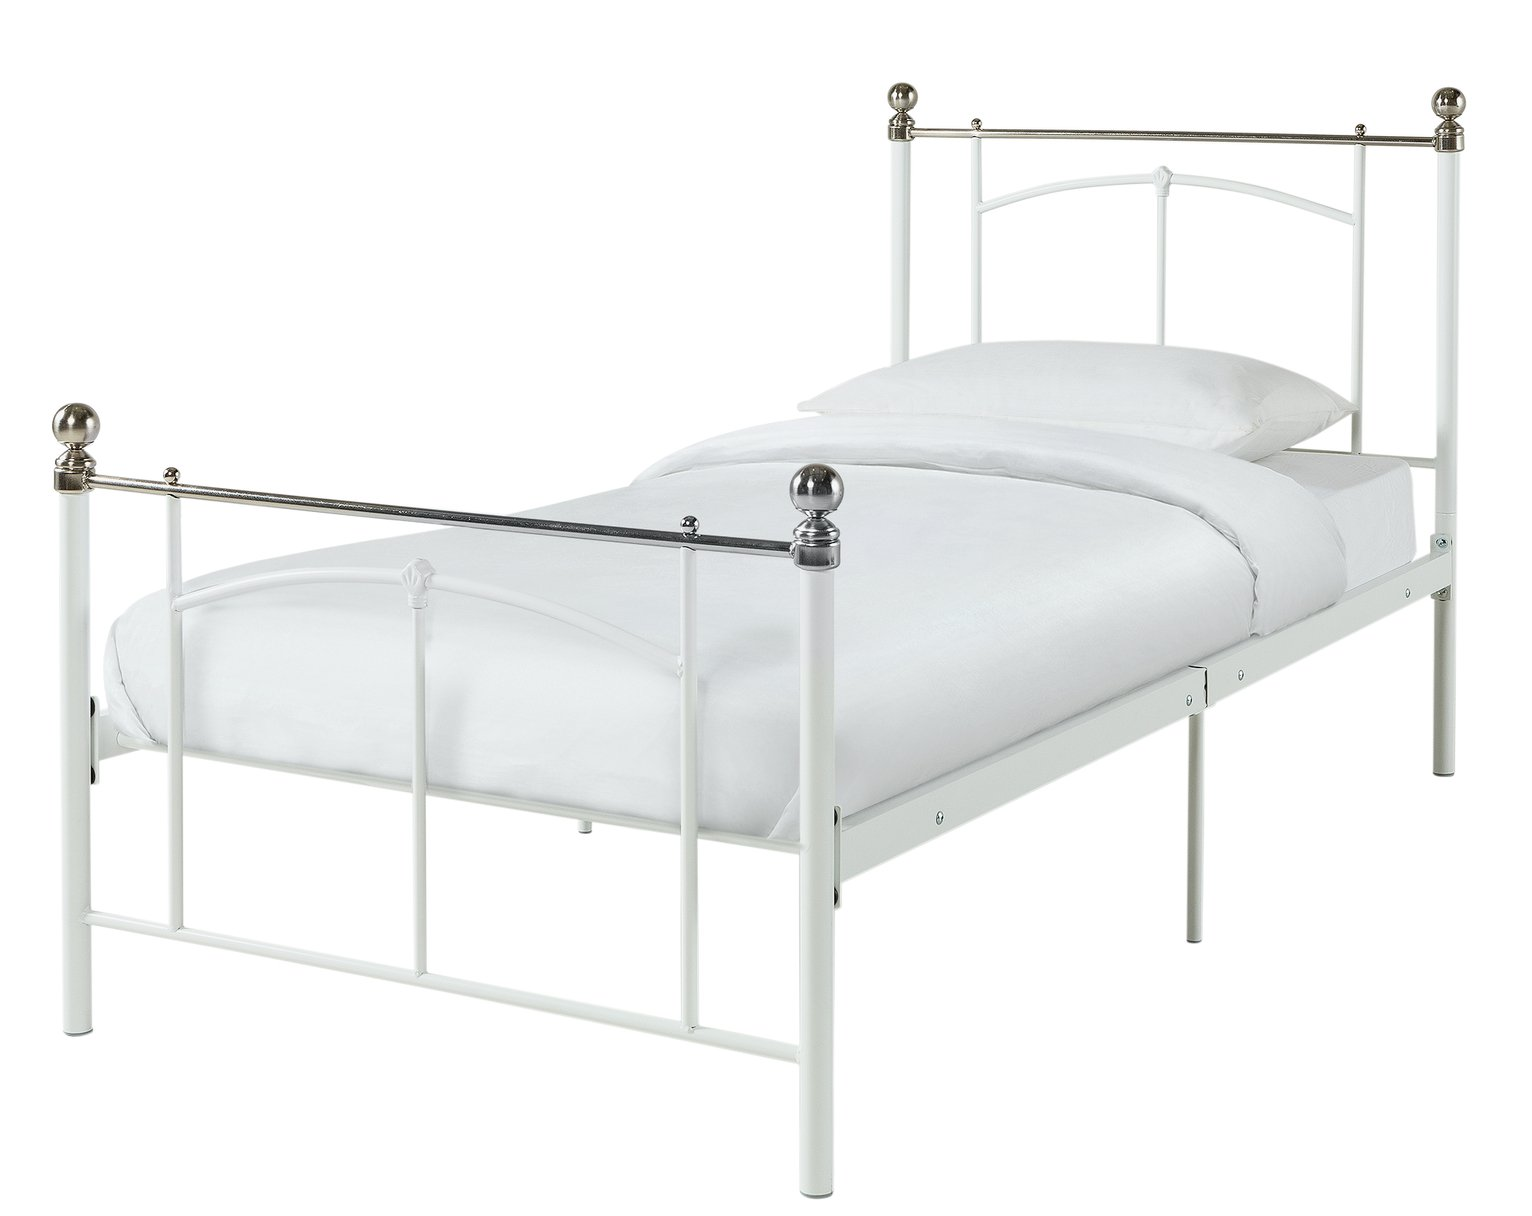 Argos - Yani - Single - Bed Frame - White